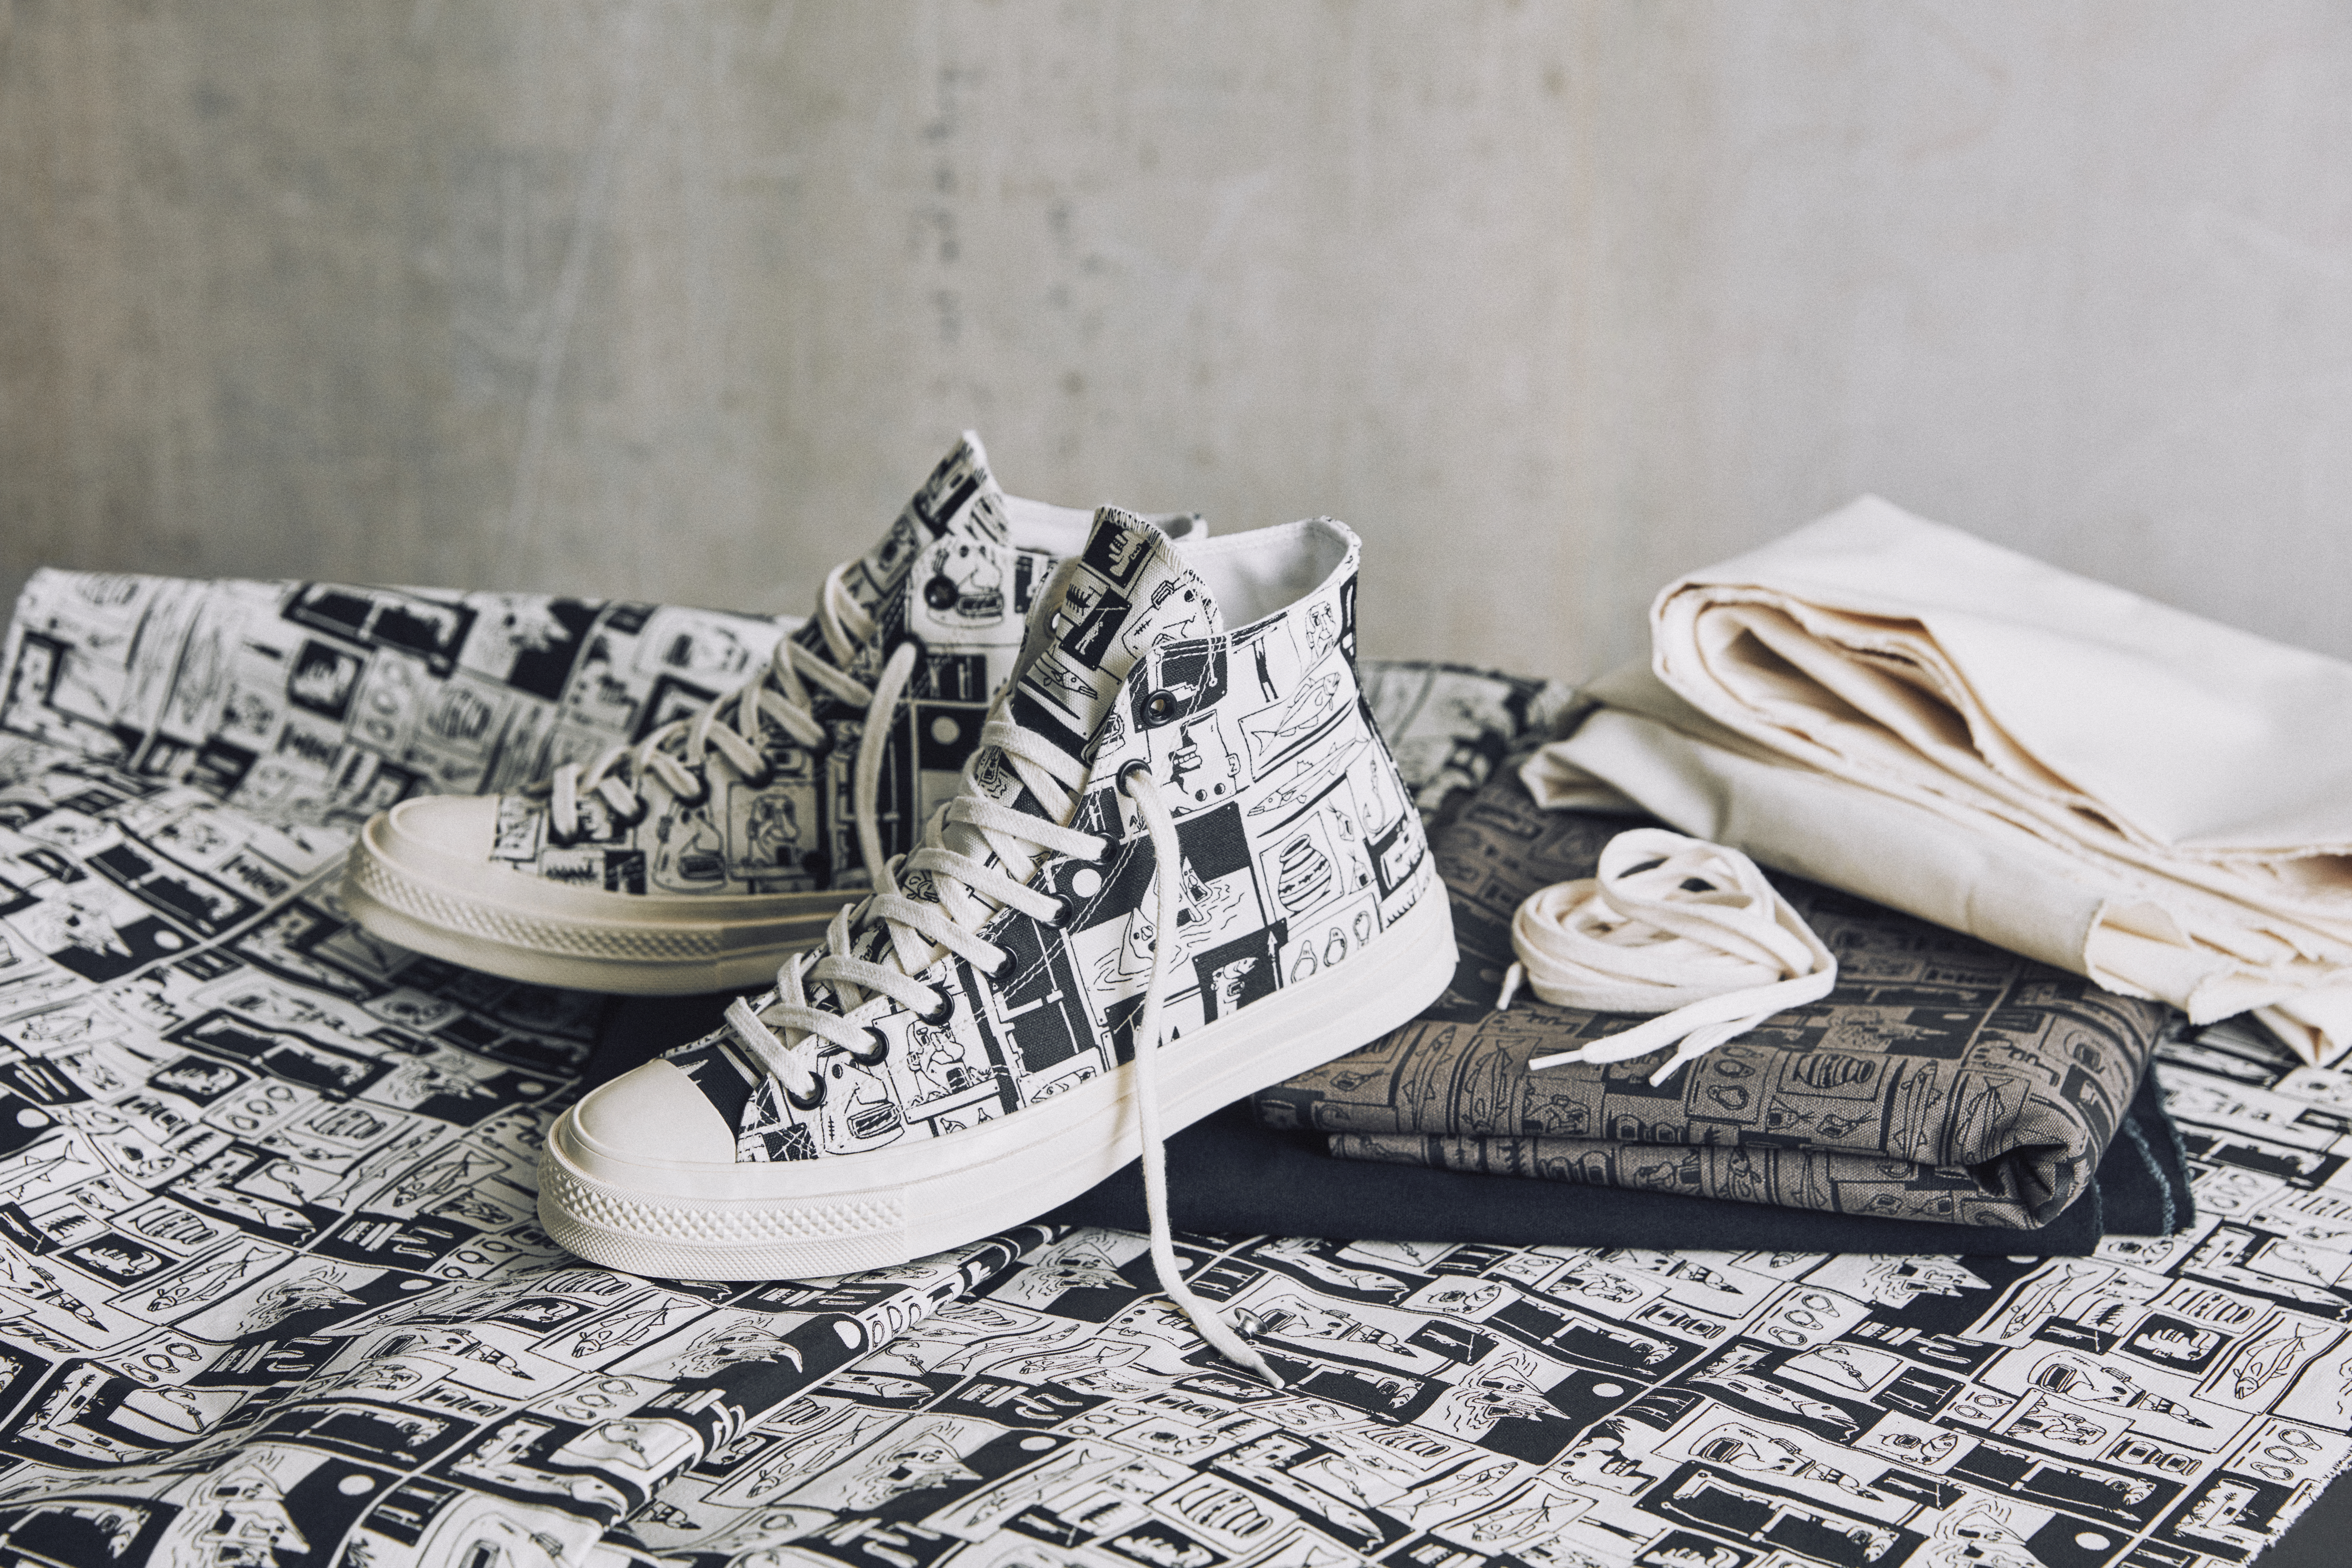 7fa28cbba86d Converse   Grotesk Join Forces for a Uniquely Customizable Collaboration